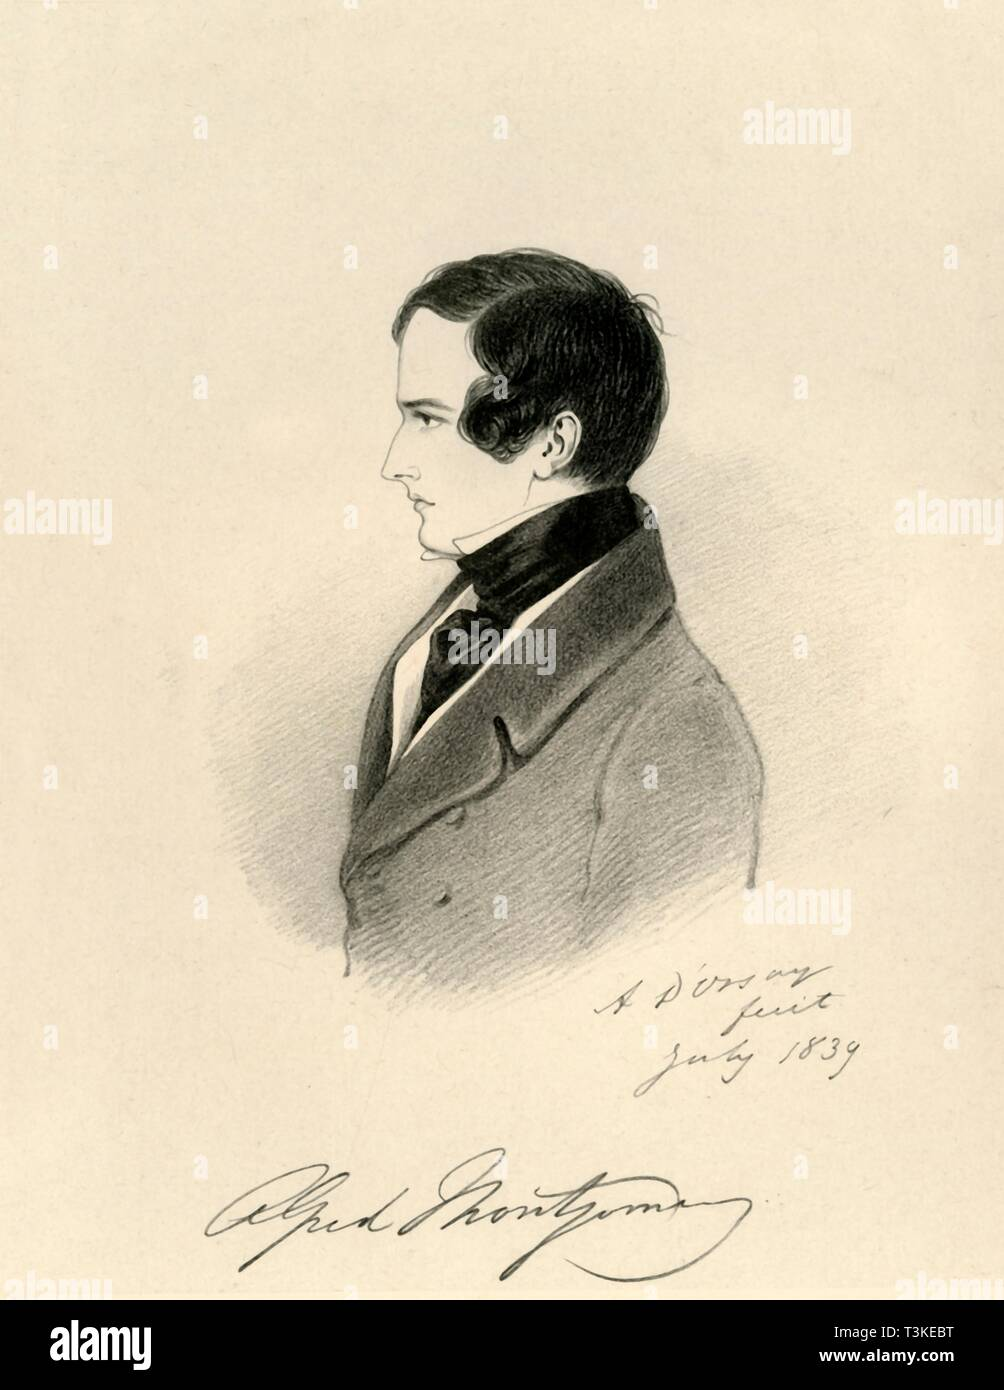 """'Alfred Montgomery', 1839. Portrait of Alfred Montgomery (1814-1896), British Commissioner for Inland Revenue. From """"Portraits by Count D'Orsay"""", an album assembled by Lady Georgiana Codrington. [1850s] - Stock Image"""